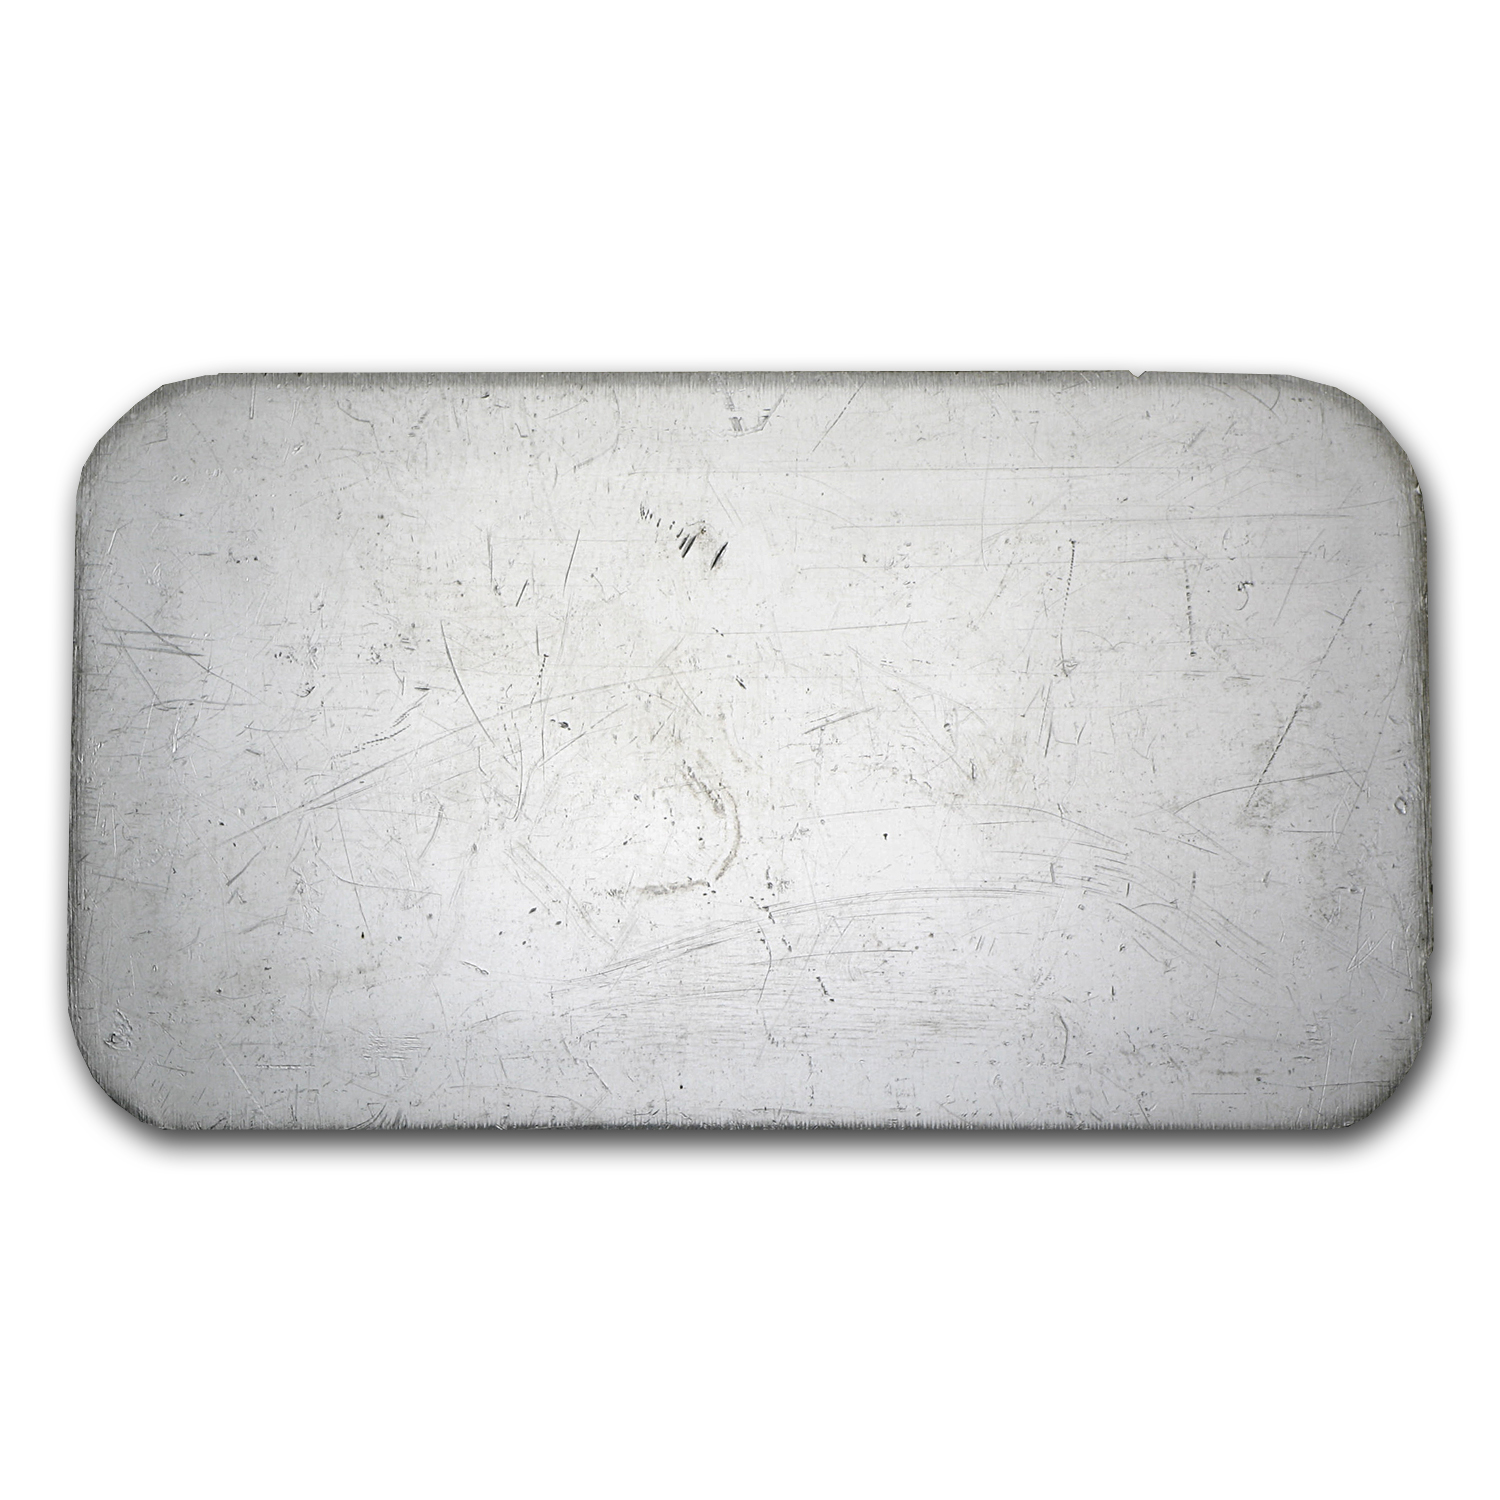 1 oz Silver Bar - Engelhard Industries (Wide/Canada/Smooth/5)